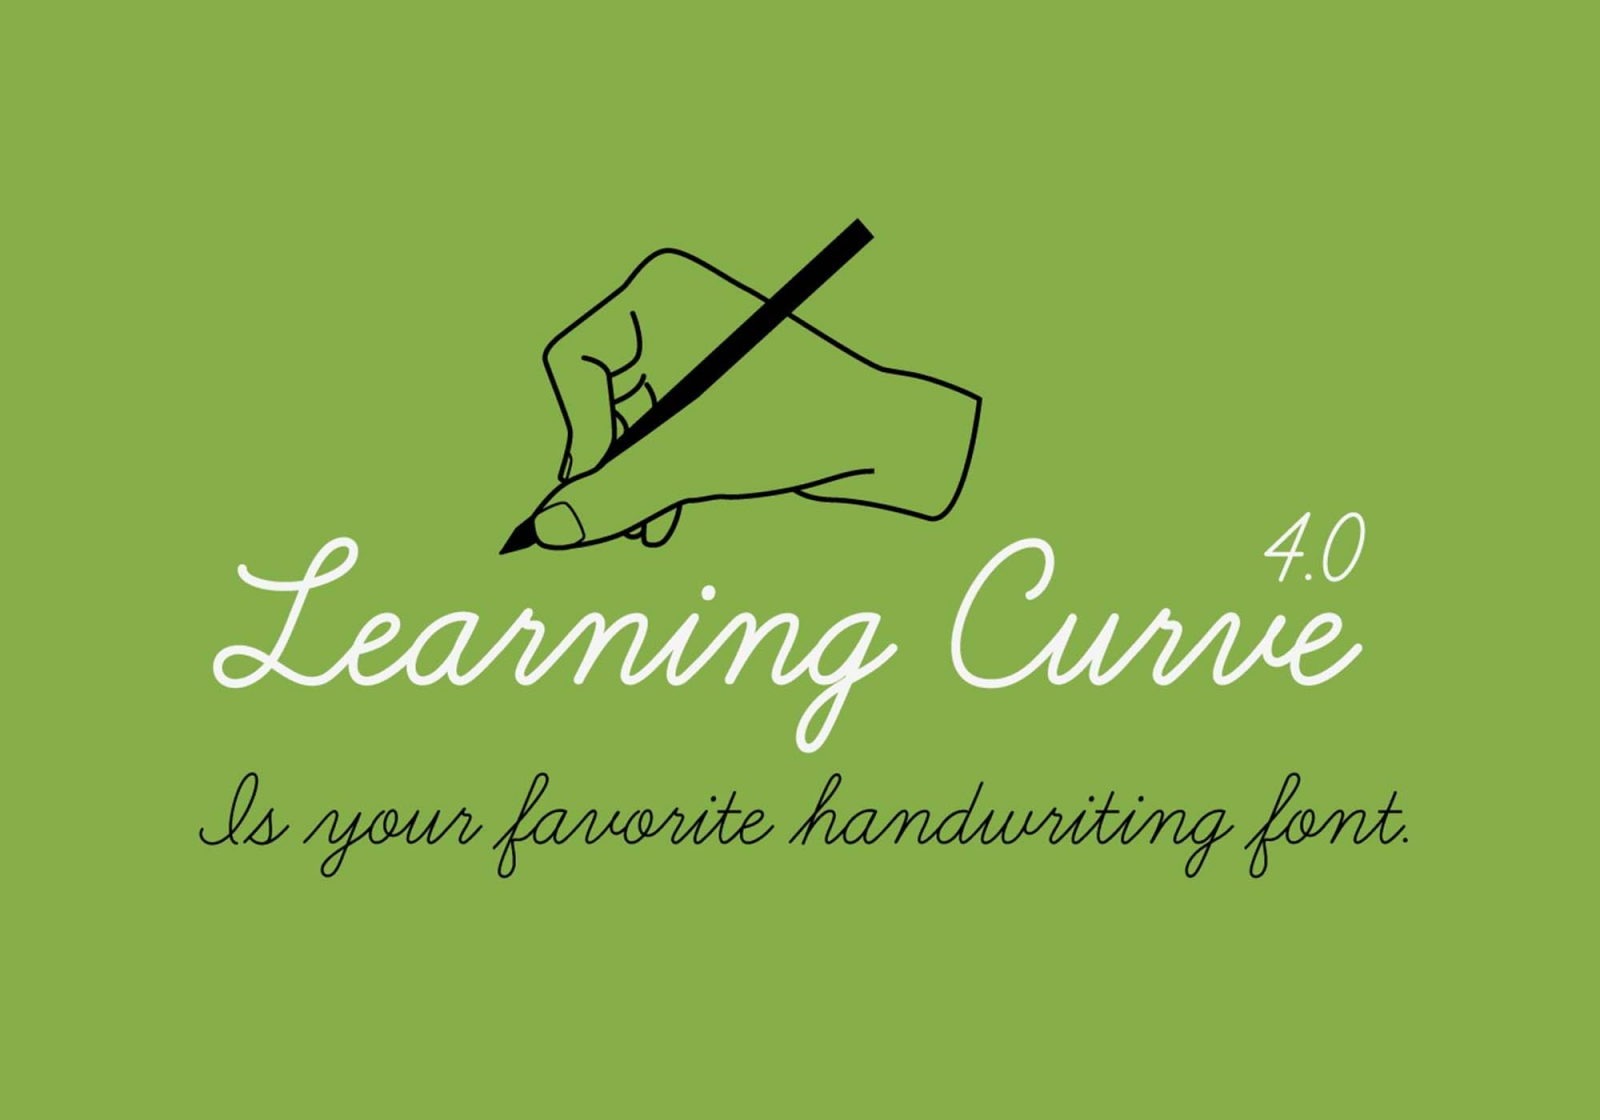 Free Learning Curve Font